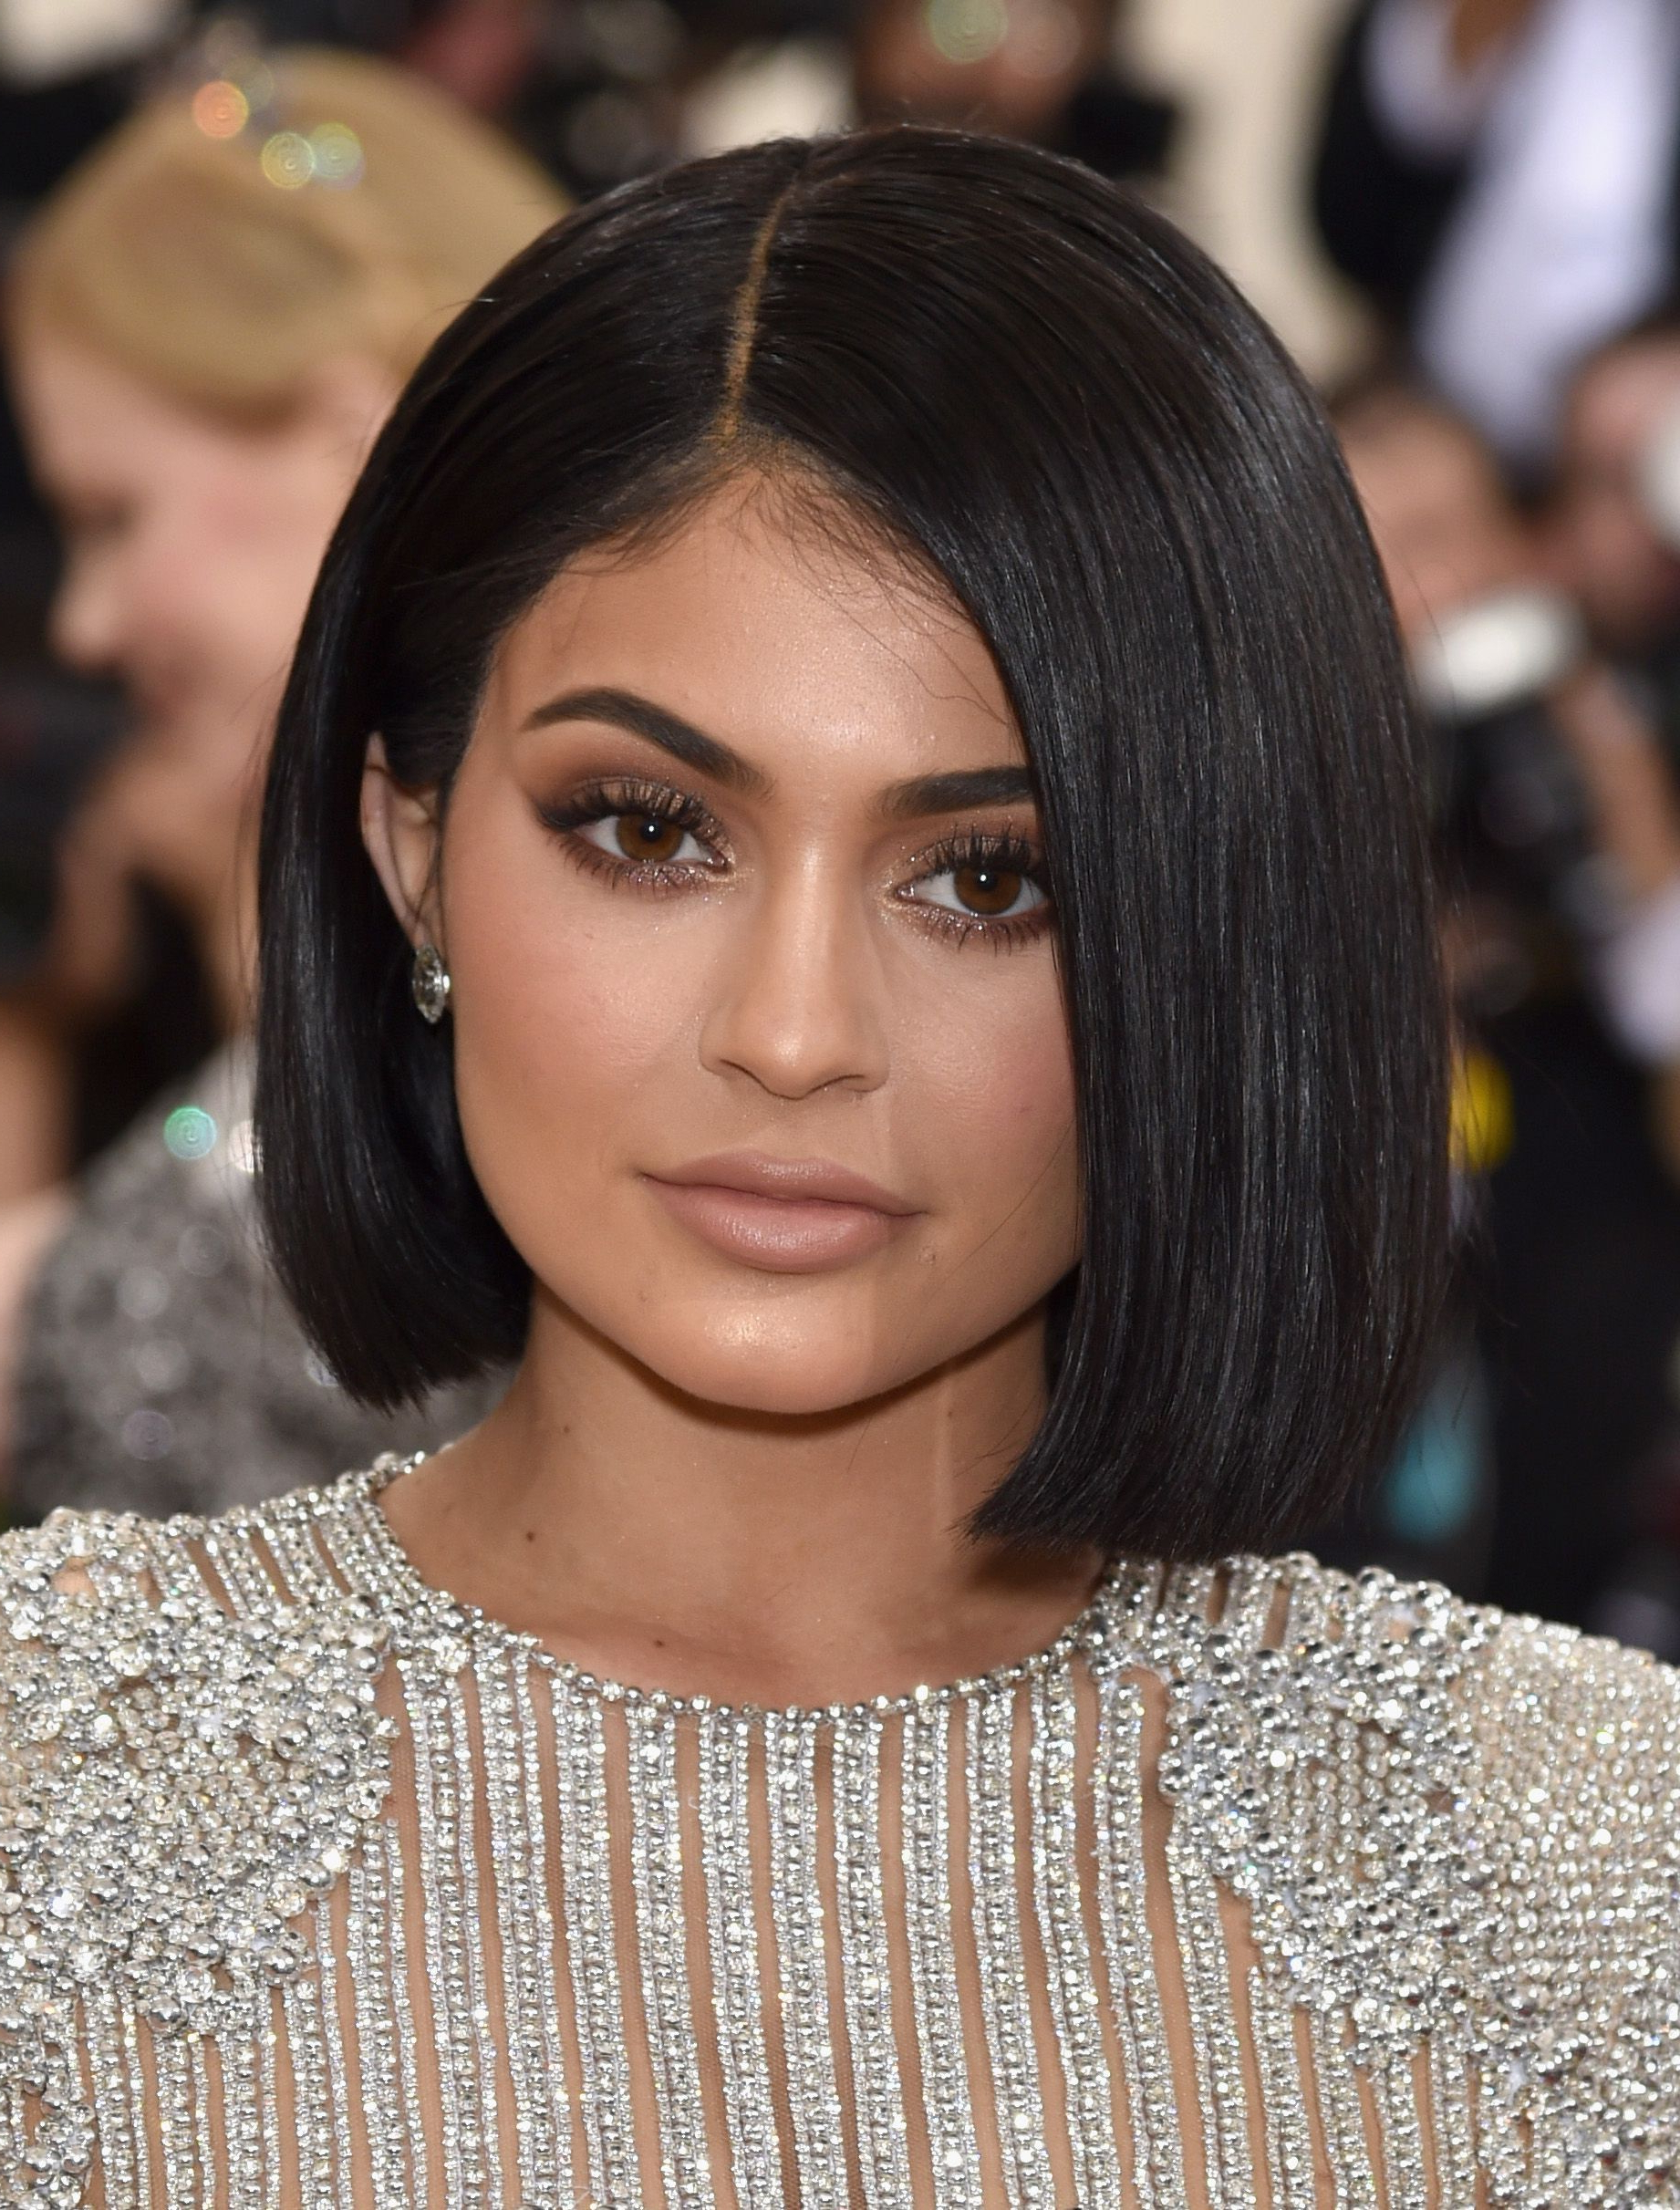 The 65 Best Short Hairstyles And Haircuts To Try Now | Haircuts Regarding Kylie Jenner Short Haircuts (View 23 of 25)